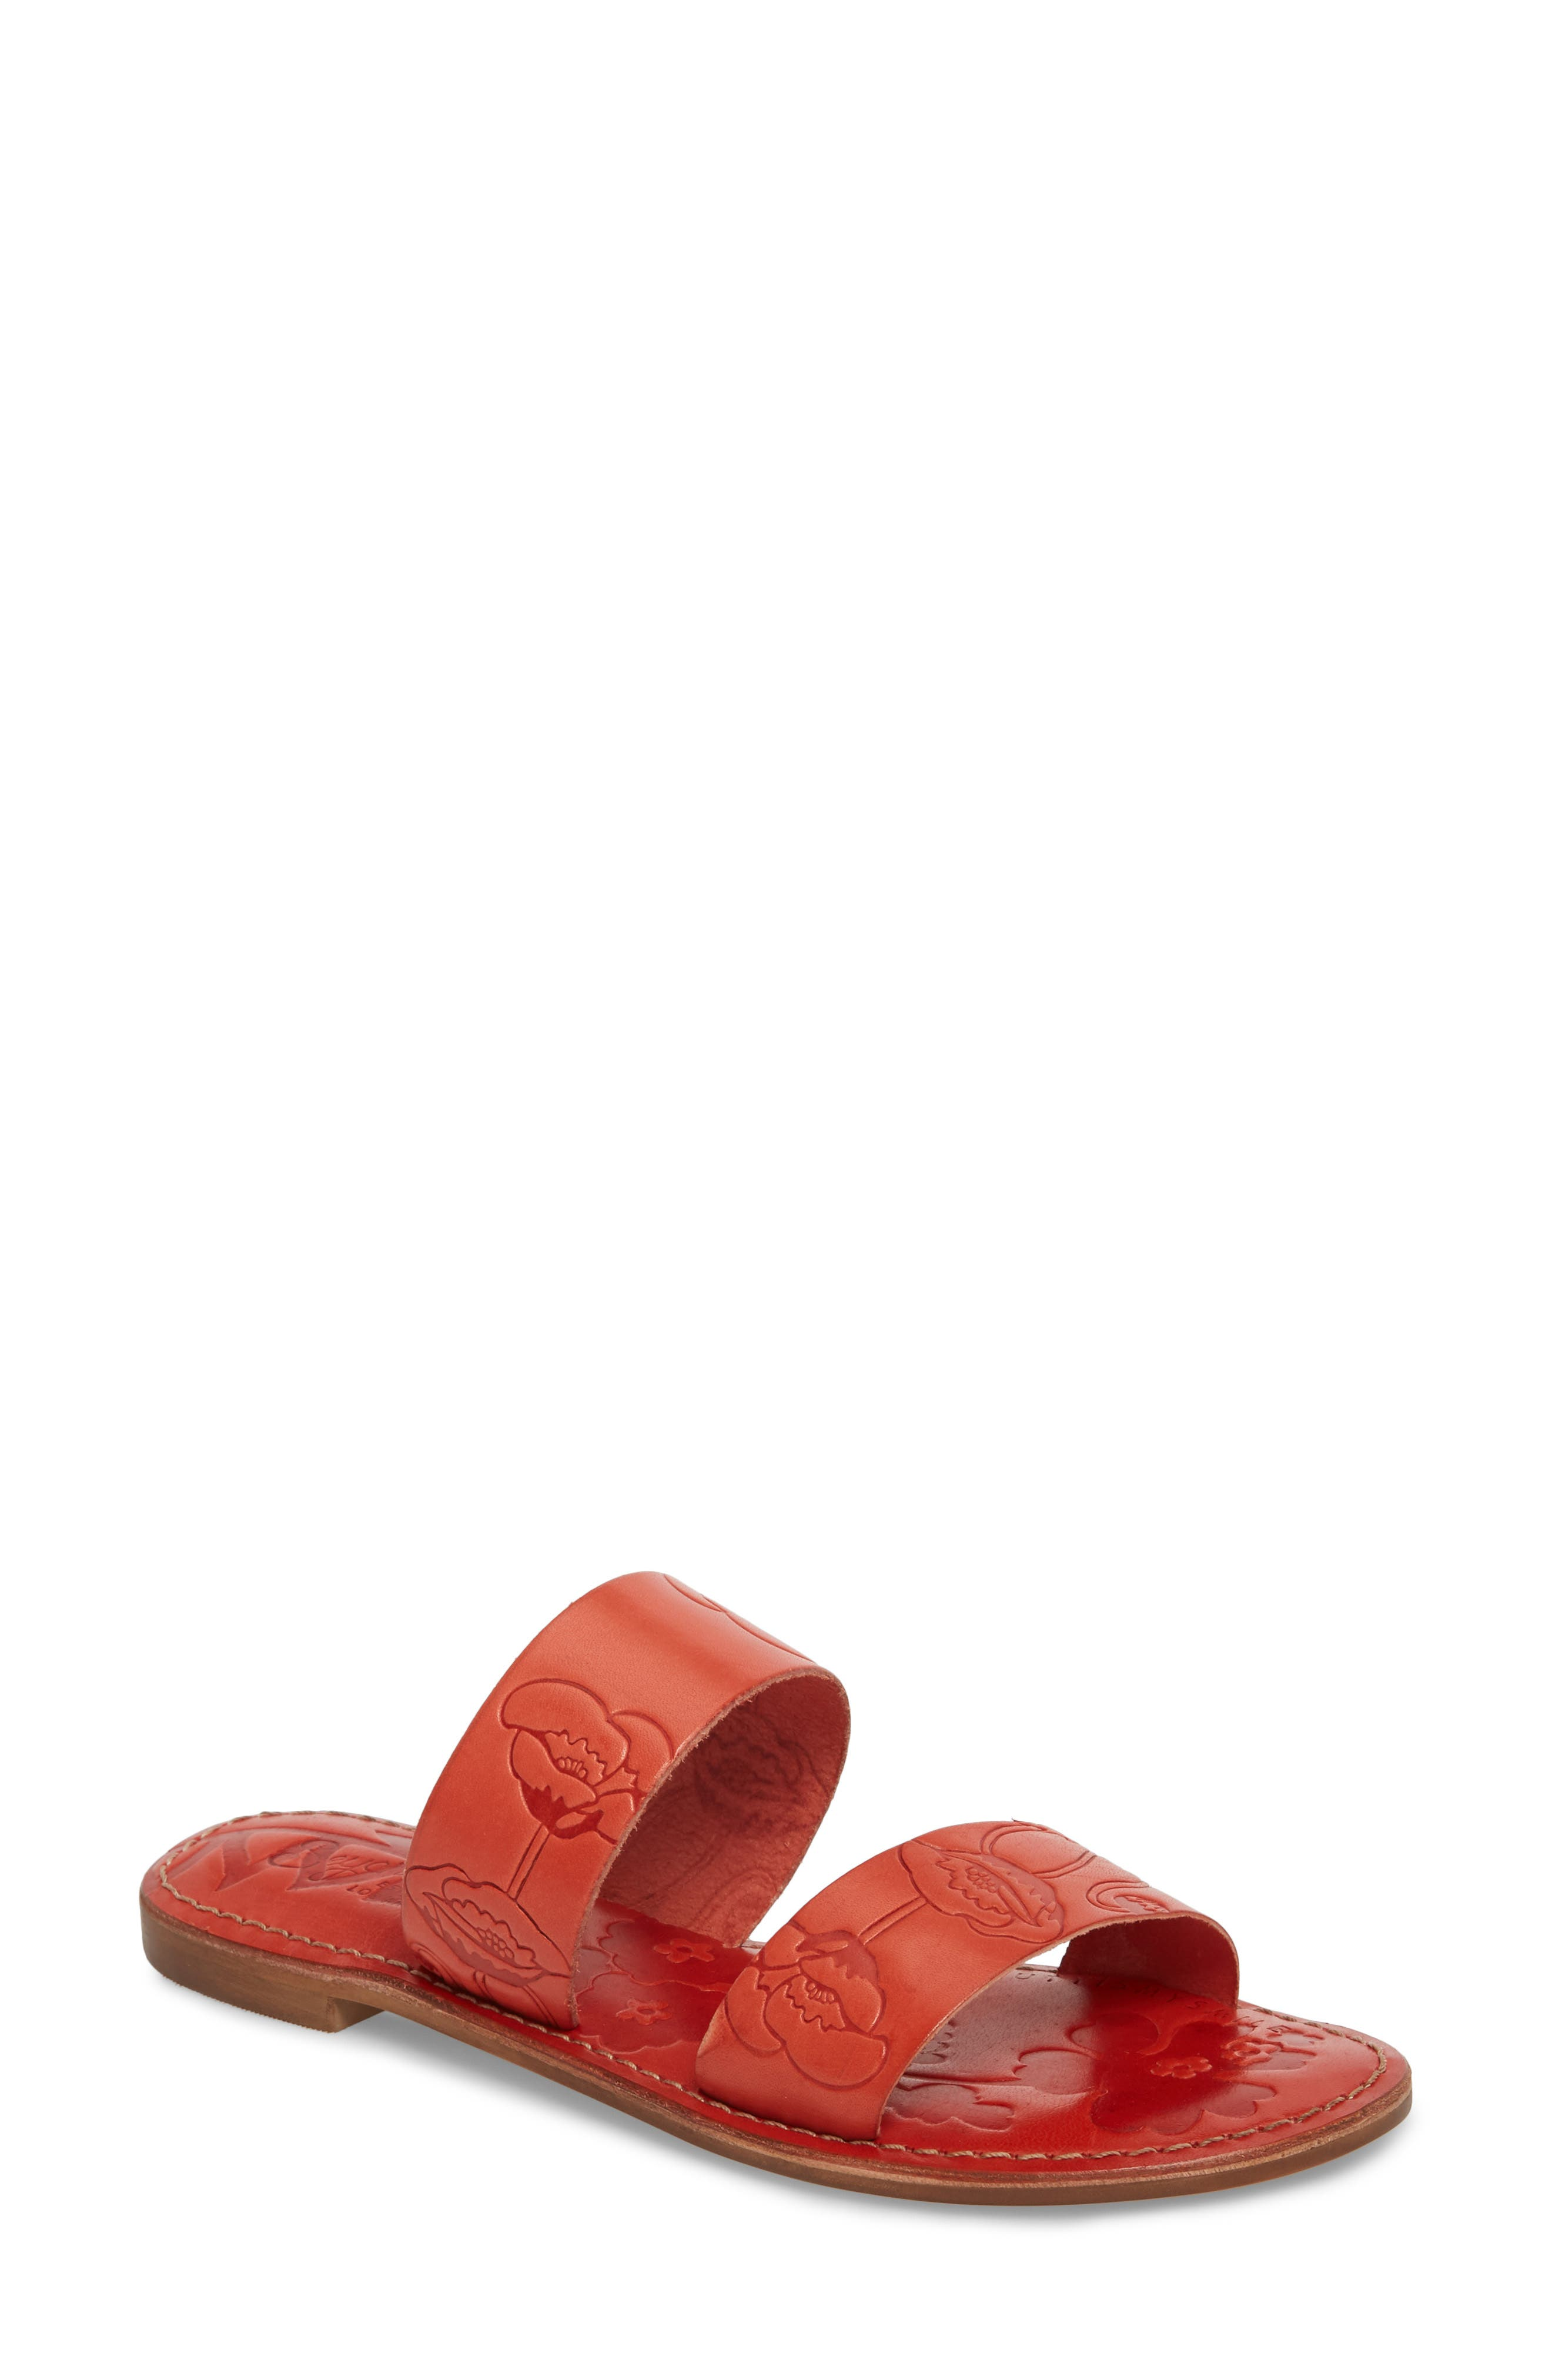 Sheroes Slide Sandal,                             Main thumbnail 1, color,                             Red Leather